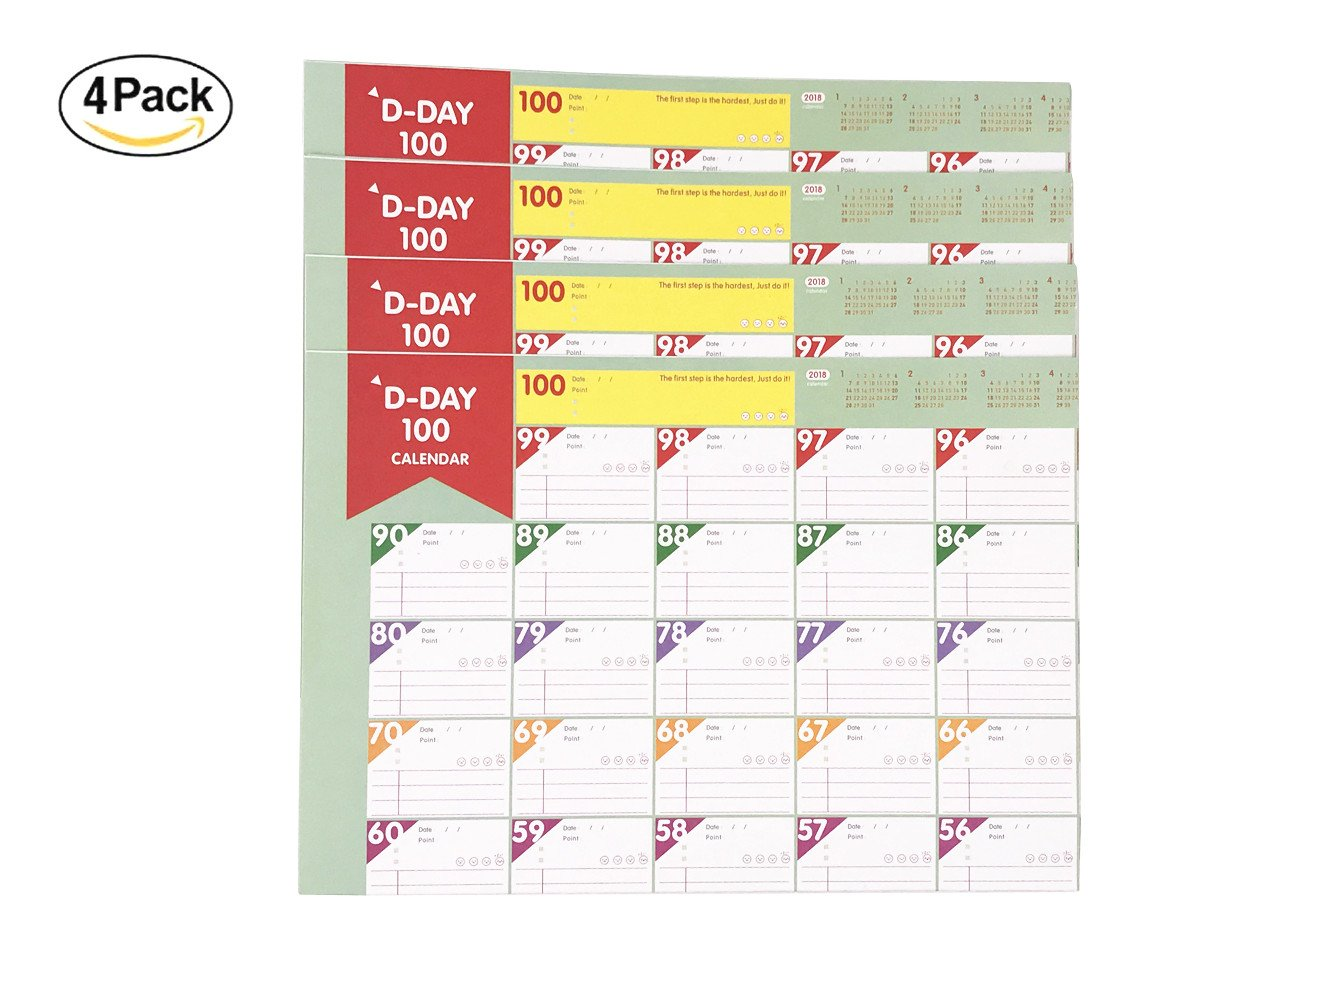 100 Days 2018-2019 Planer Sheet - 4 Packs Countdown Schedule Wall Calendars Daily Weekly Months Planner Goals Organizer for Work/Study/Lose Weight